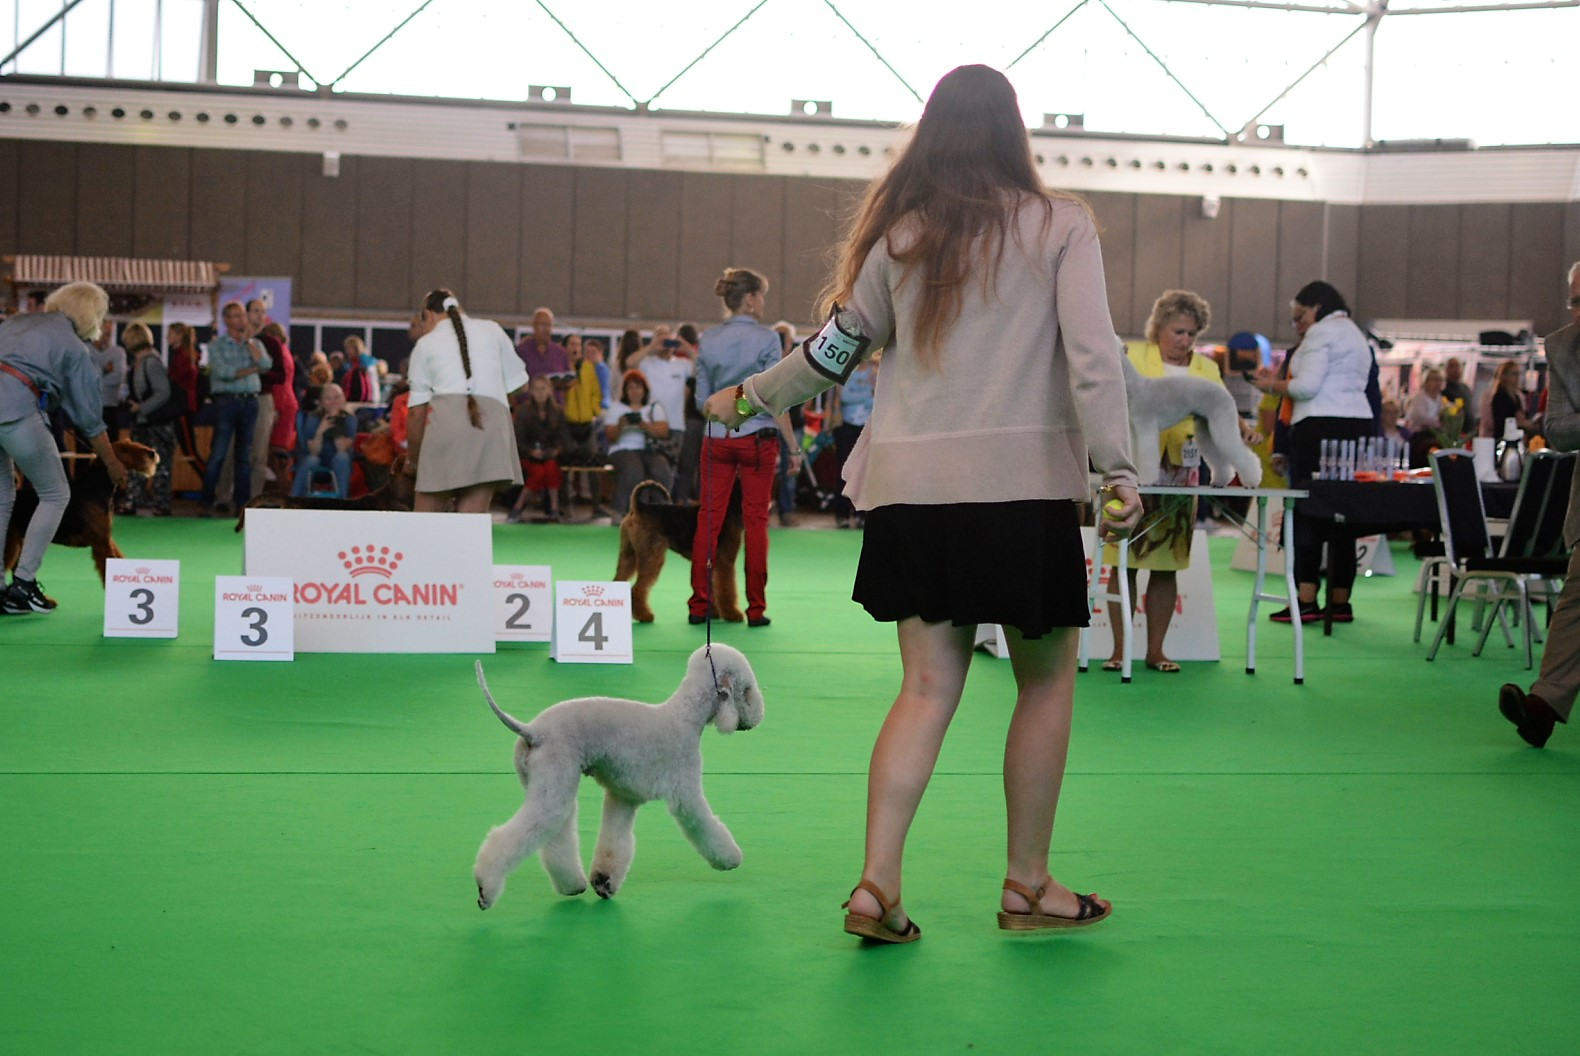 World Dog Show 2018 Cadillac Car De Ochopeniques 2